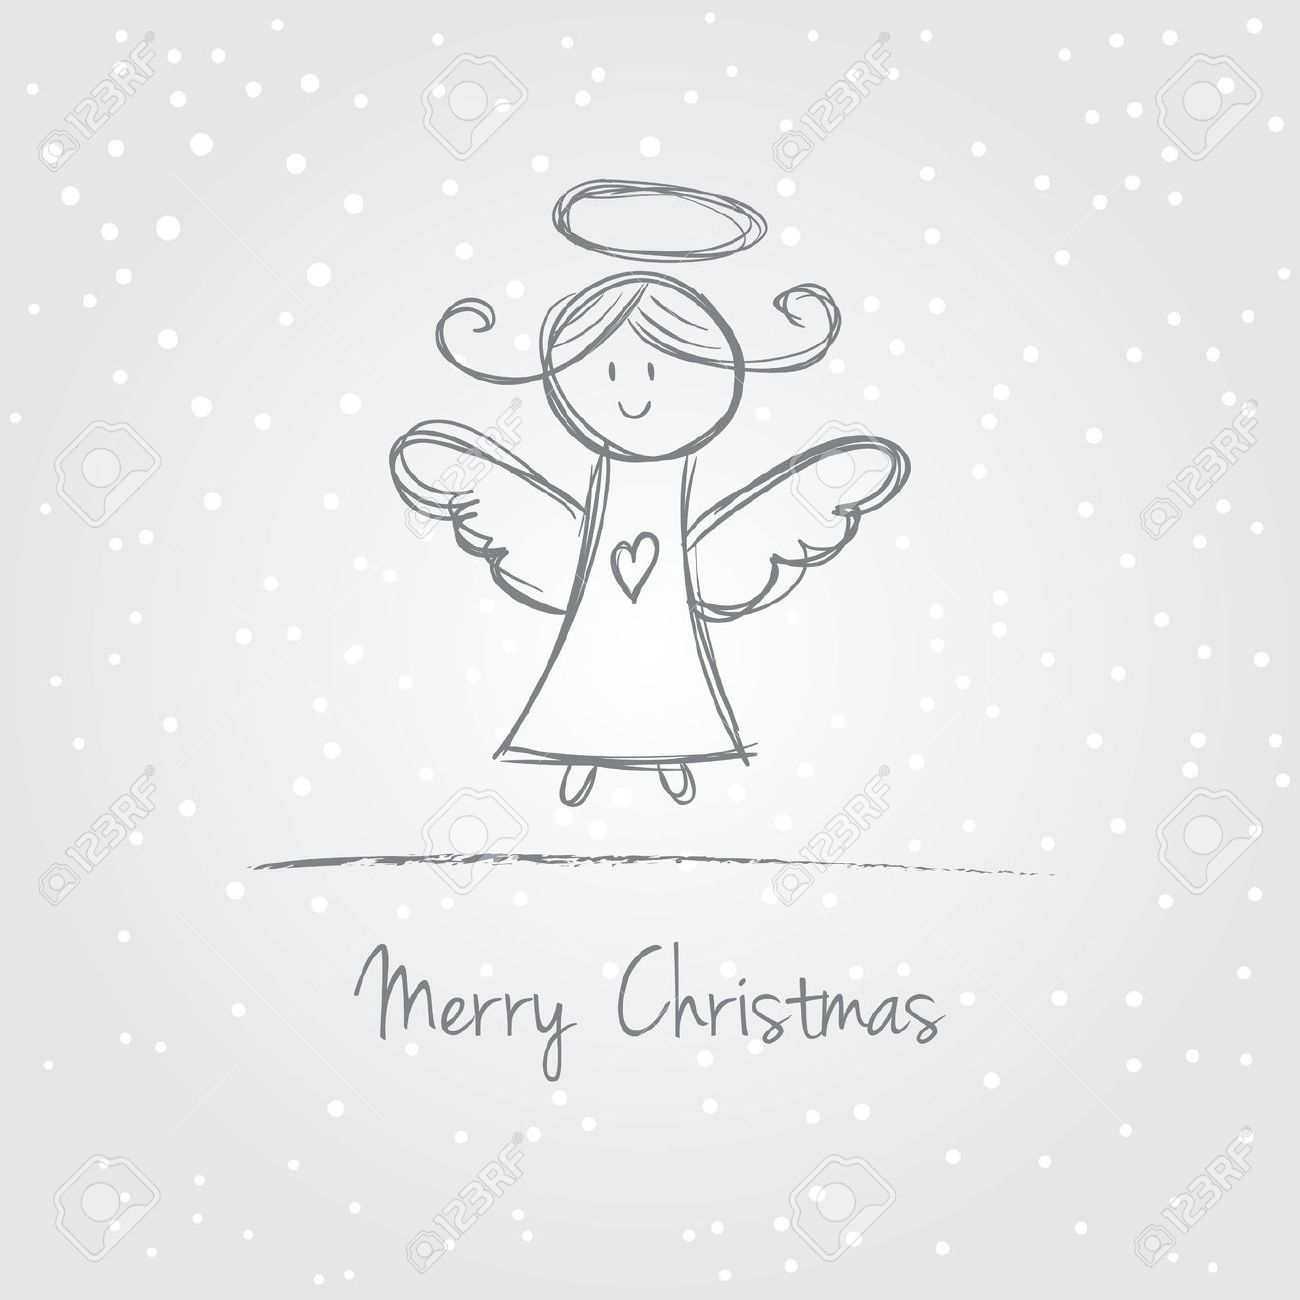 Simple Illustration Of Angels Google Search Weihnachten